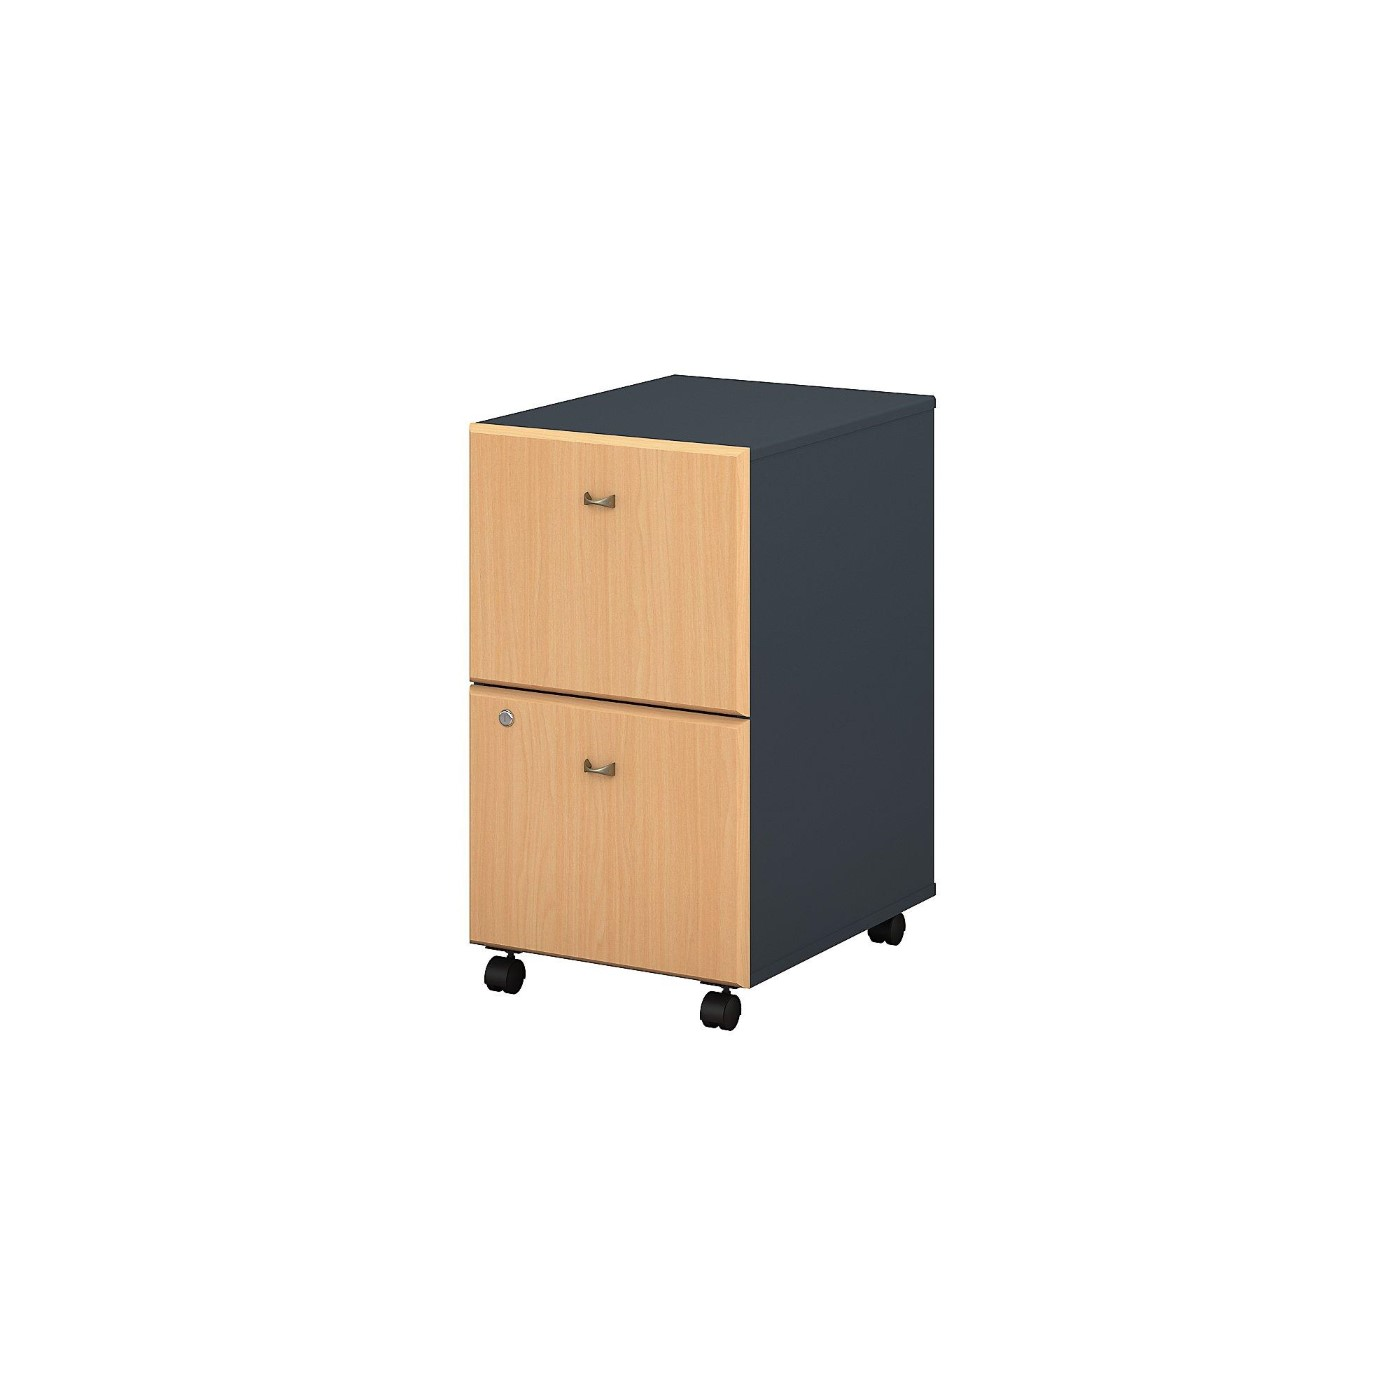 BUSH BUSINESS FURNITURE SERIES A 2 DRAWER MOBILE FILE CABINET. FREE SHIPPING.